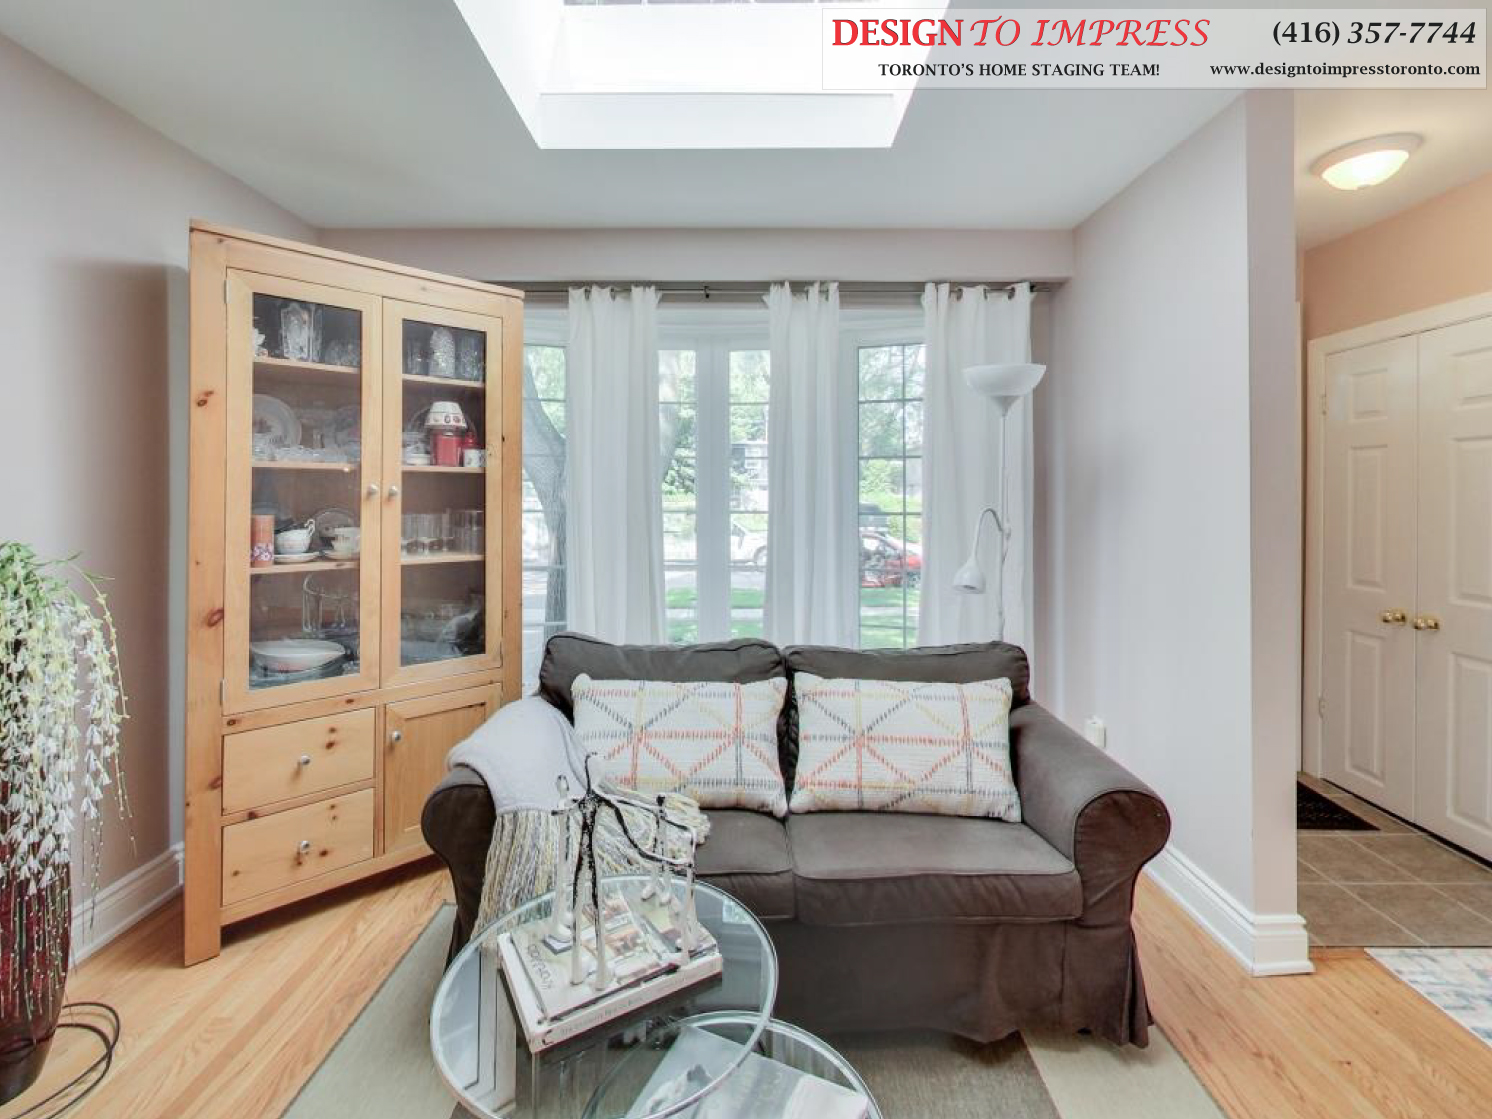 Windows, 41 Bournville, Scarborough Home Staging